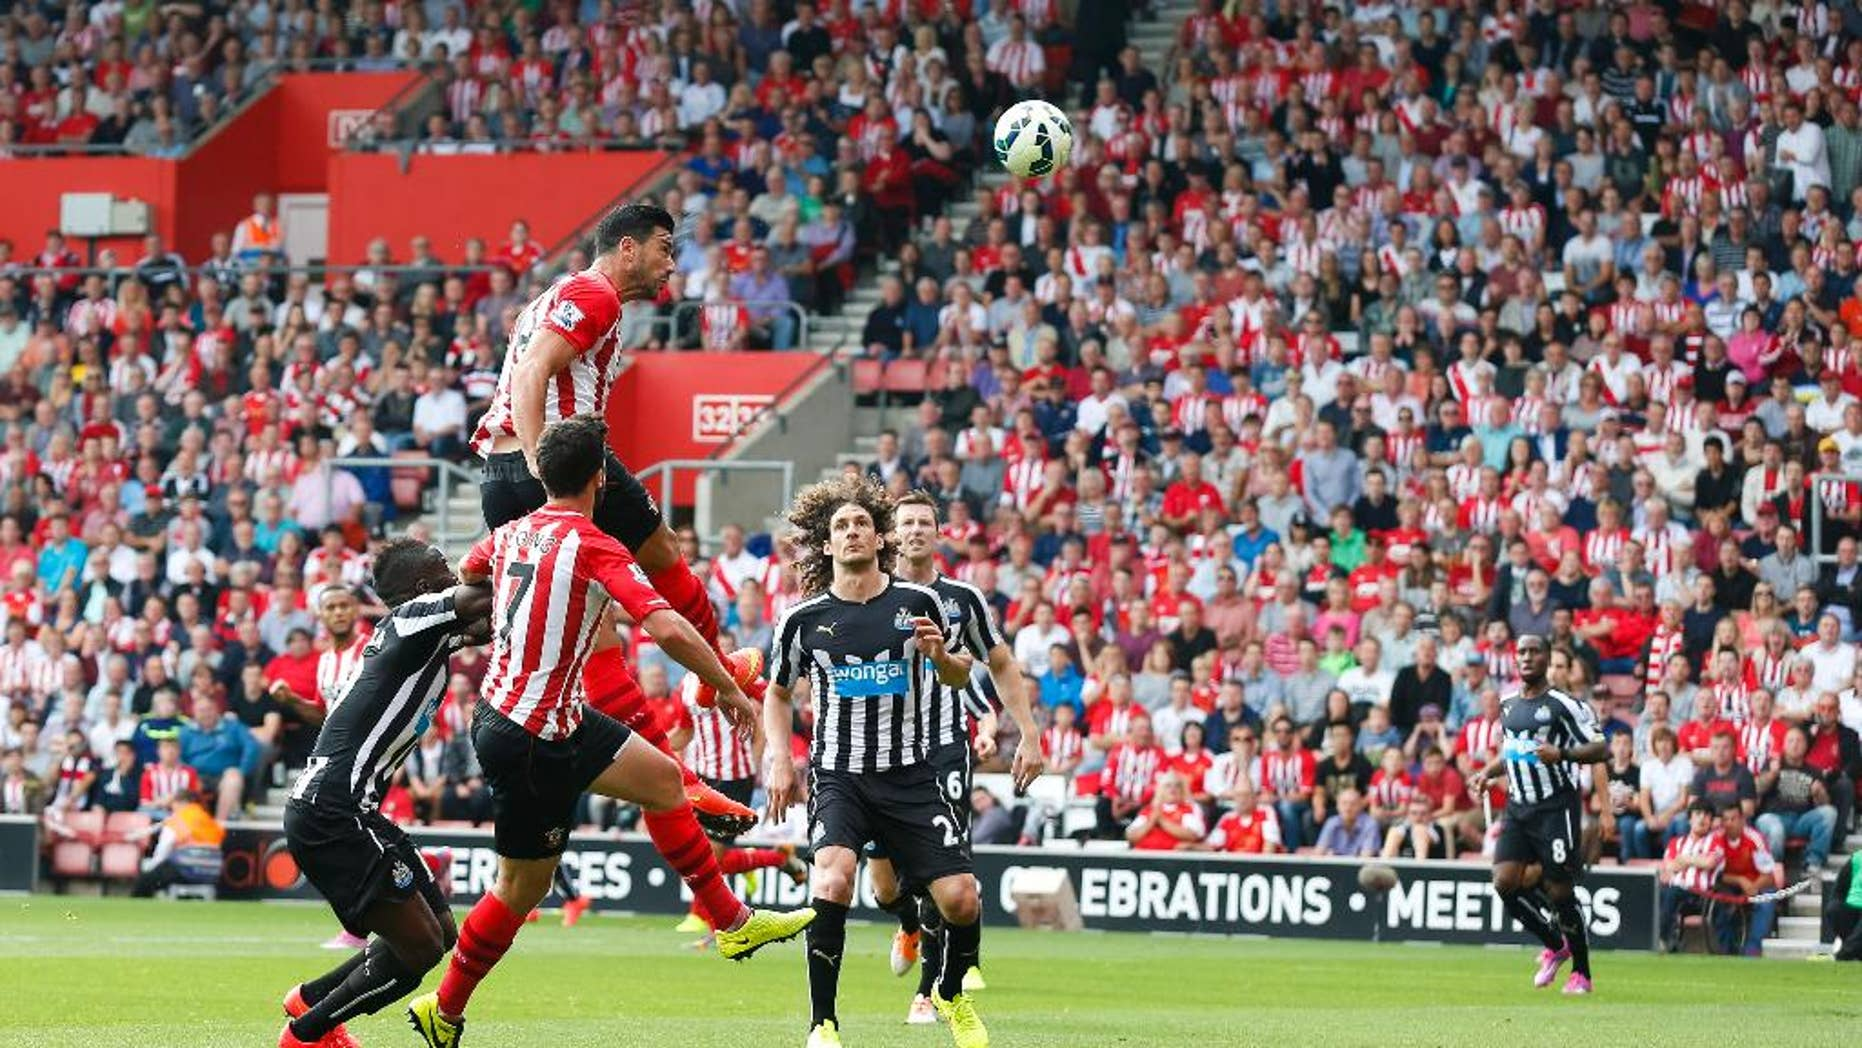 Southampton's Graziano Pelle, above, scores during their English Premier League soccer match against Newcastle United at St Mary's, Southampton, England, Saturday, Sept. 13, 2014. (AP Photo/Chris Ison, PA Wire)      UNITED KINGDOM OUT    -    NO SALES   -   NO ARCHIVES